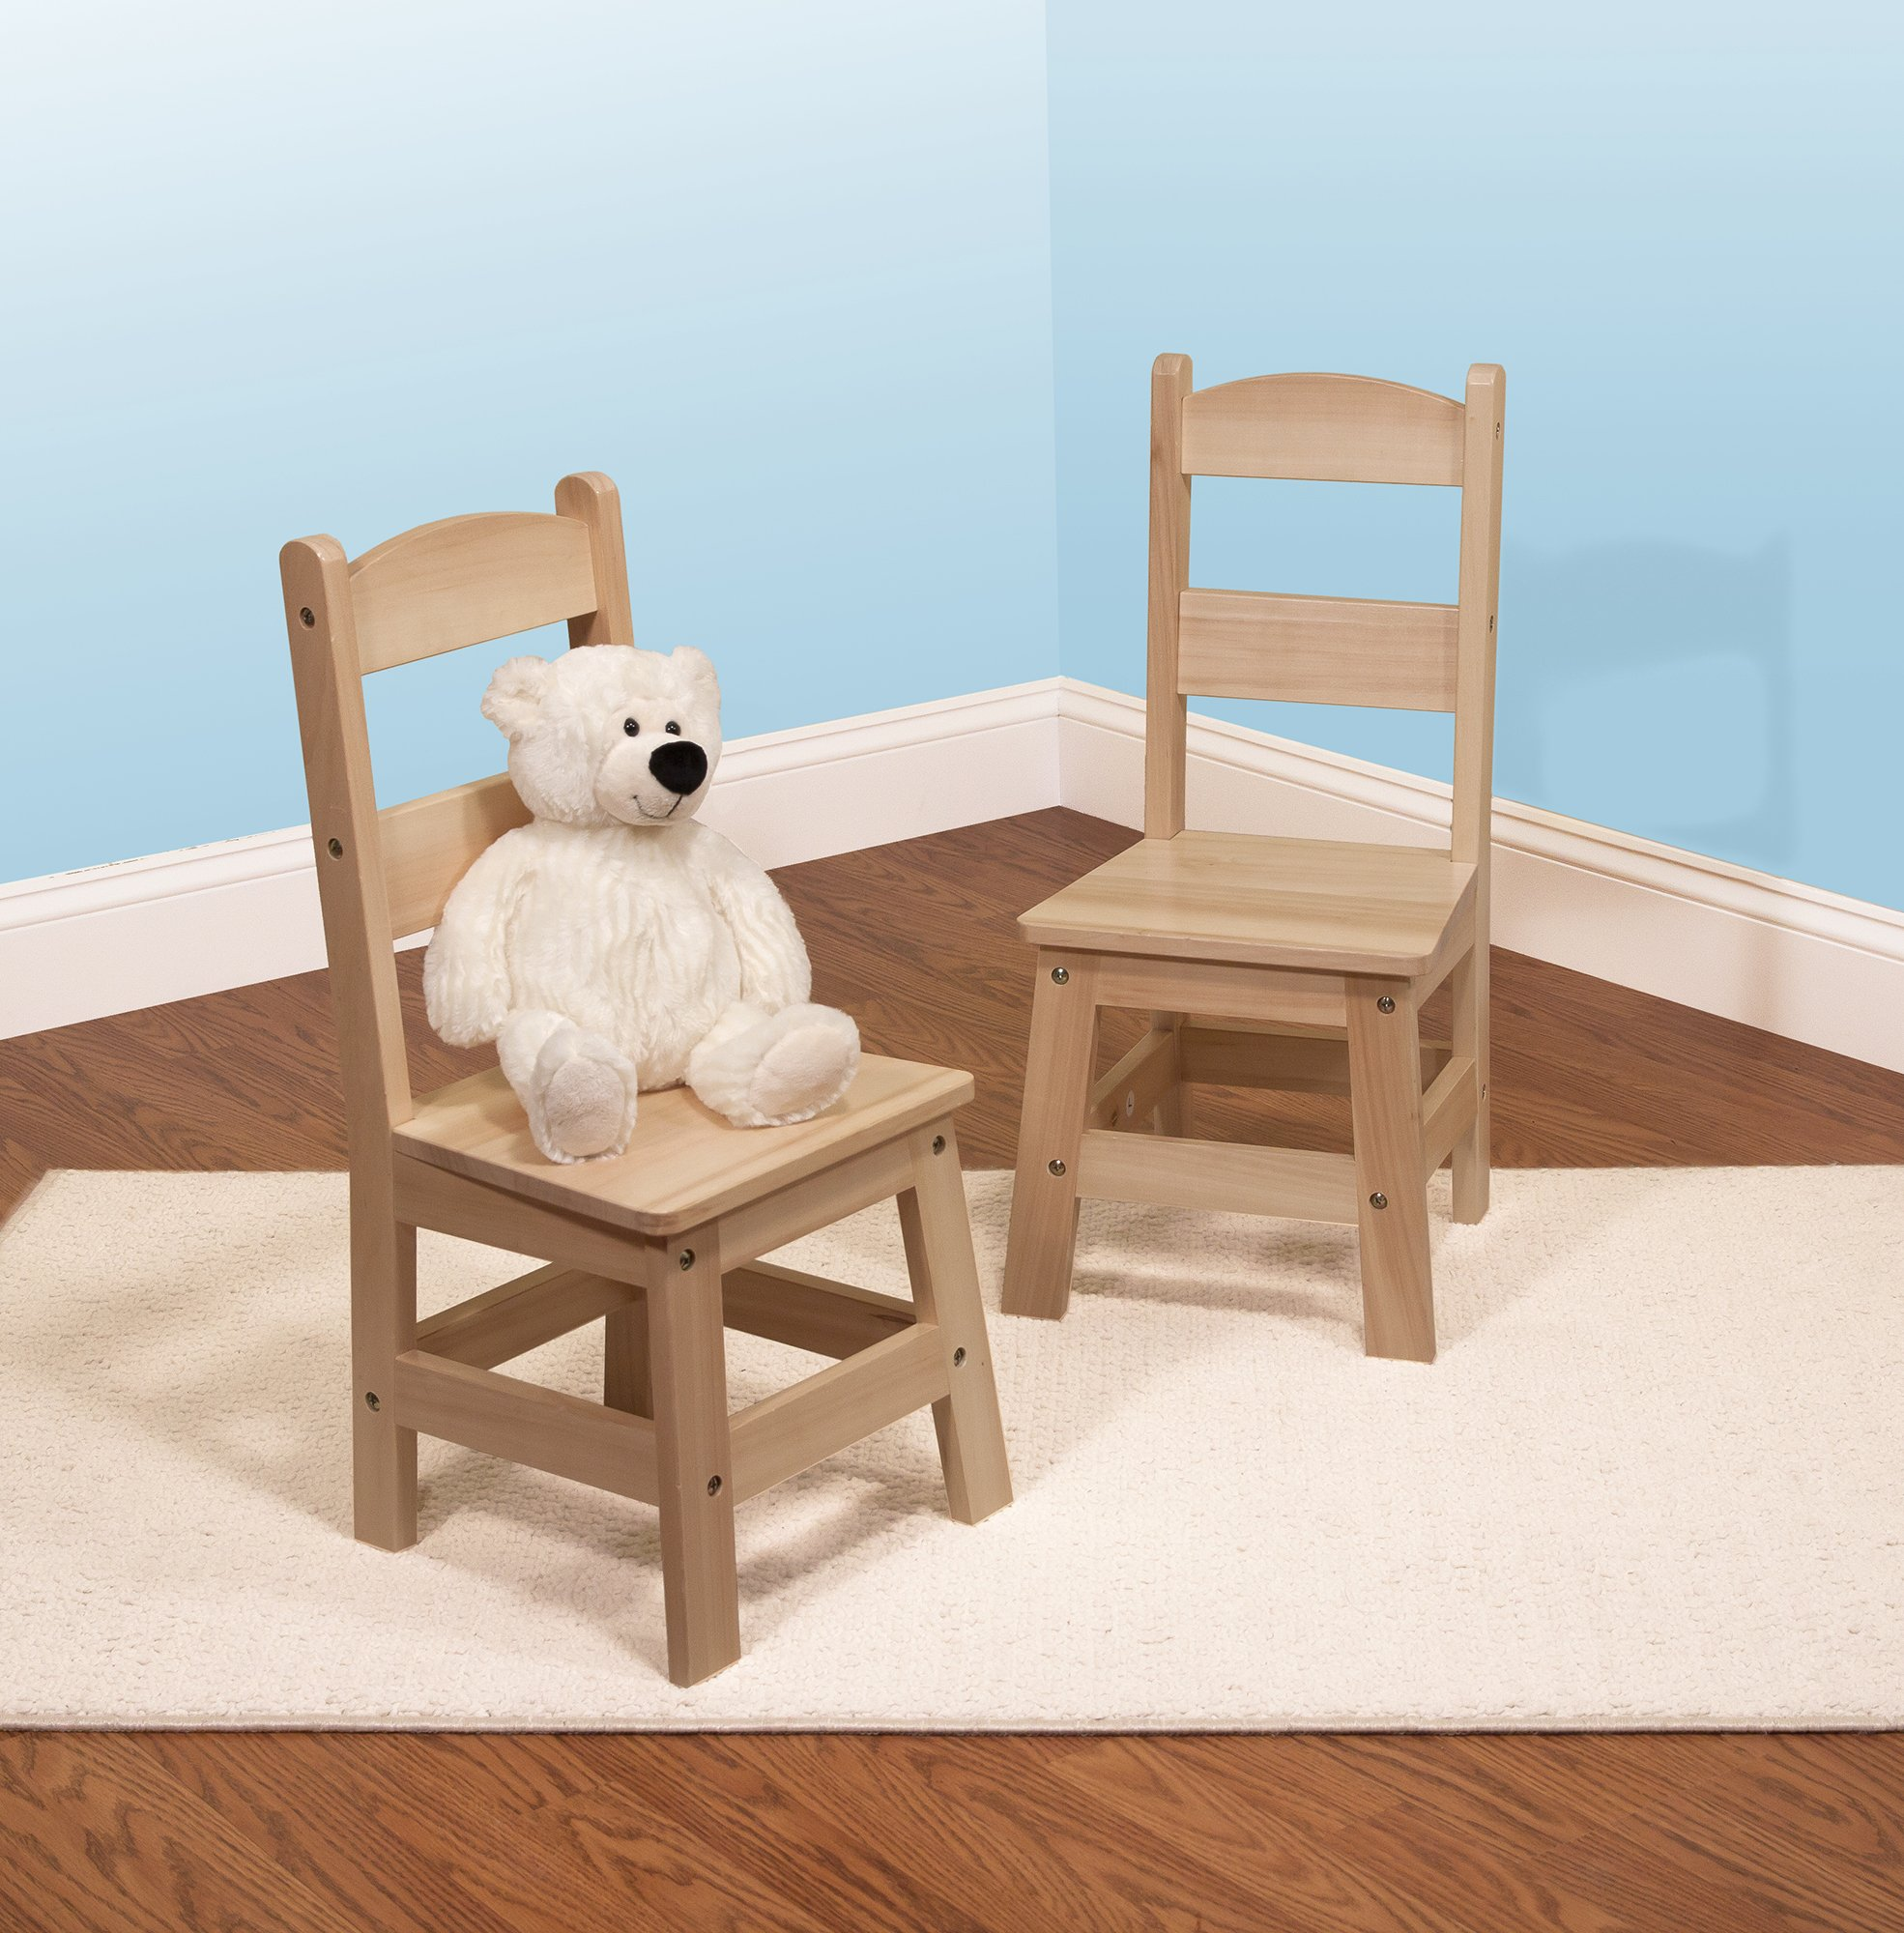 Melissa & Doug Solid Wood Chairs, Set of 2 – Light Finish Furniture for Playroom